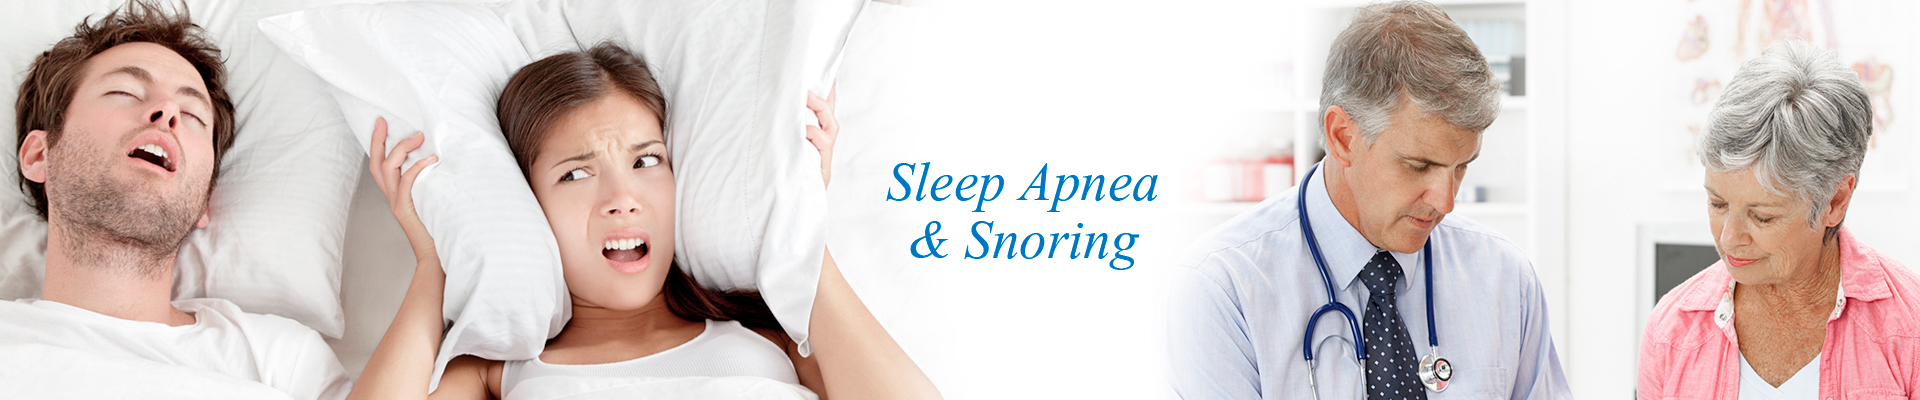 Sleep Apnea & Snoring - Associated Coastal ENT